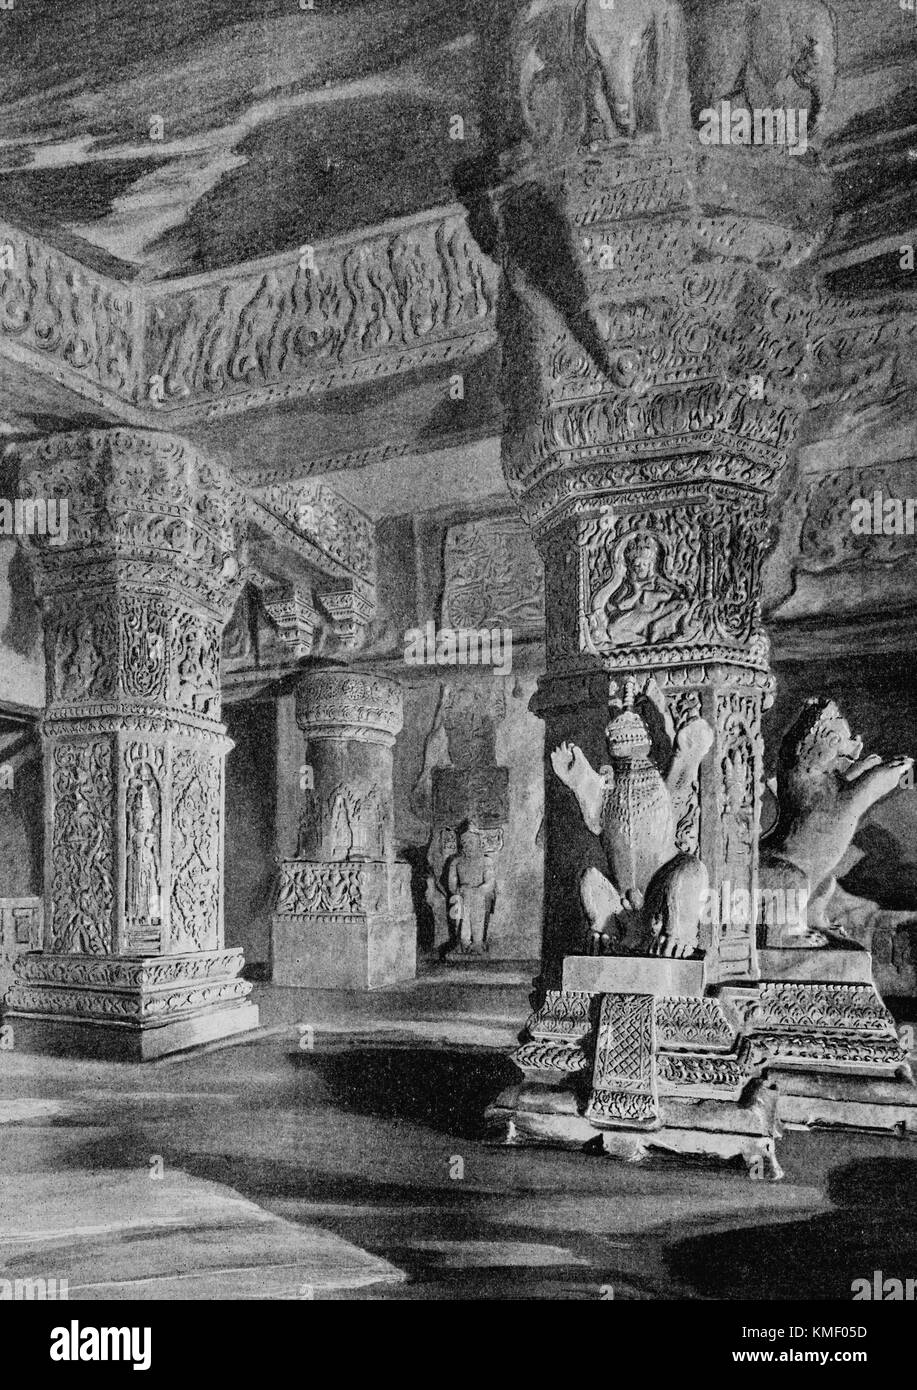 French Indochina Pavilion, Underground room of a Khmer temple, Universal Exhibition 1900 in Paris, Picture from Stock Photo